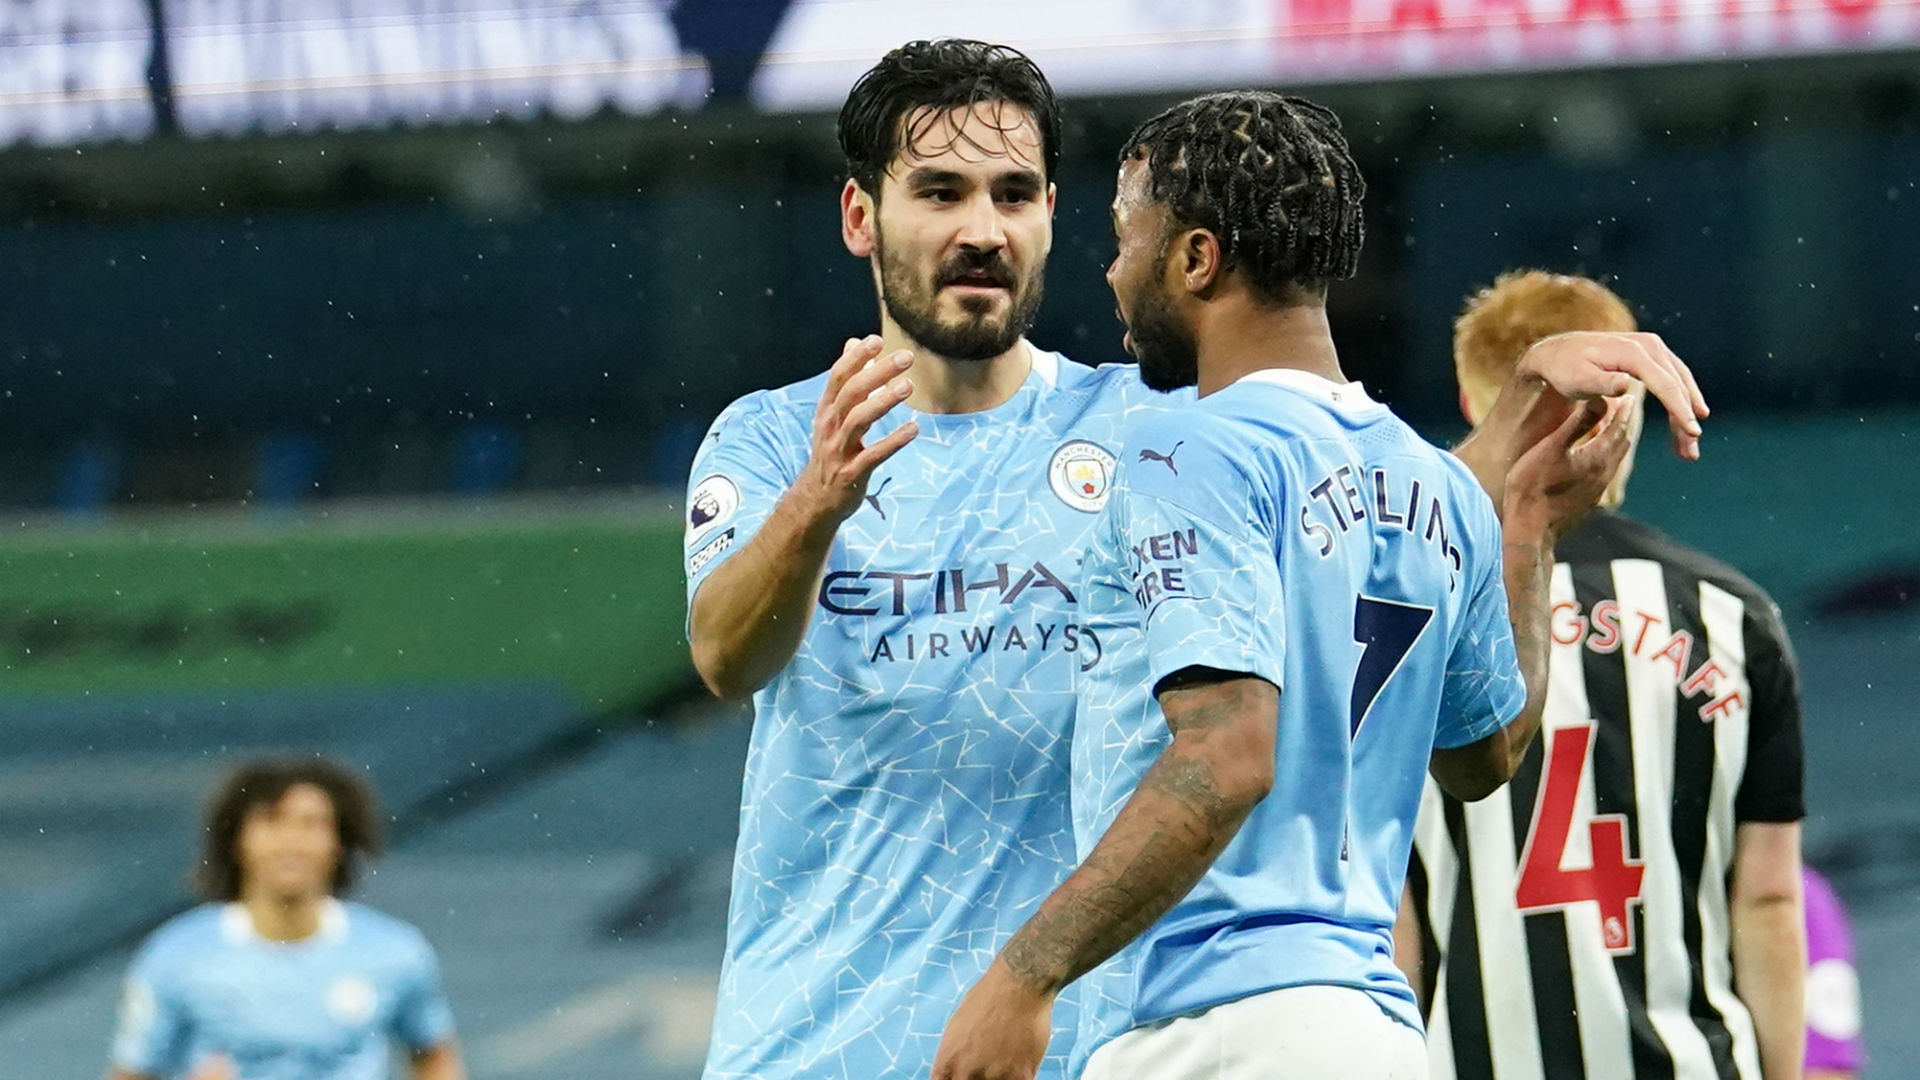 Manchester City 2-0 Newcastle United: Gundogan and Torres secure routine win